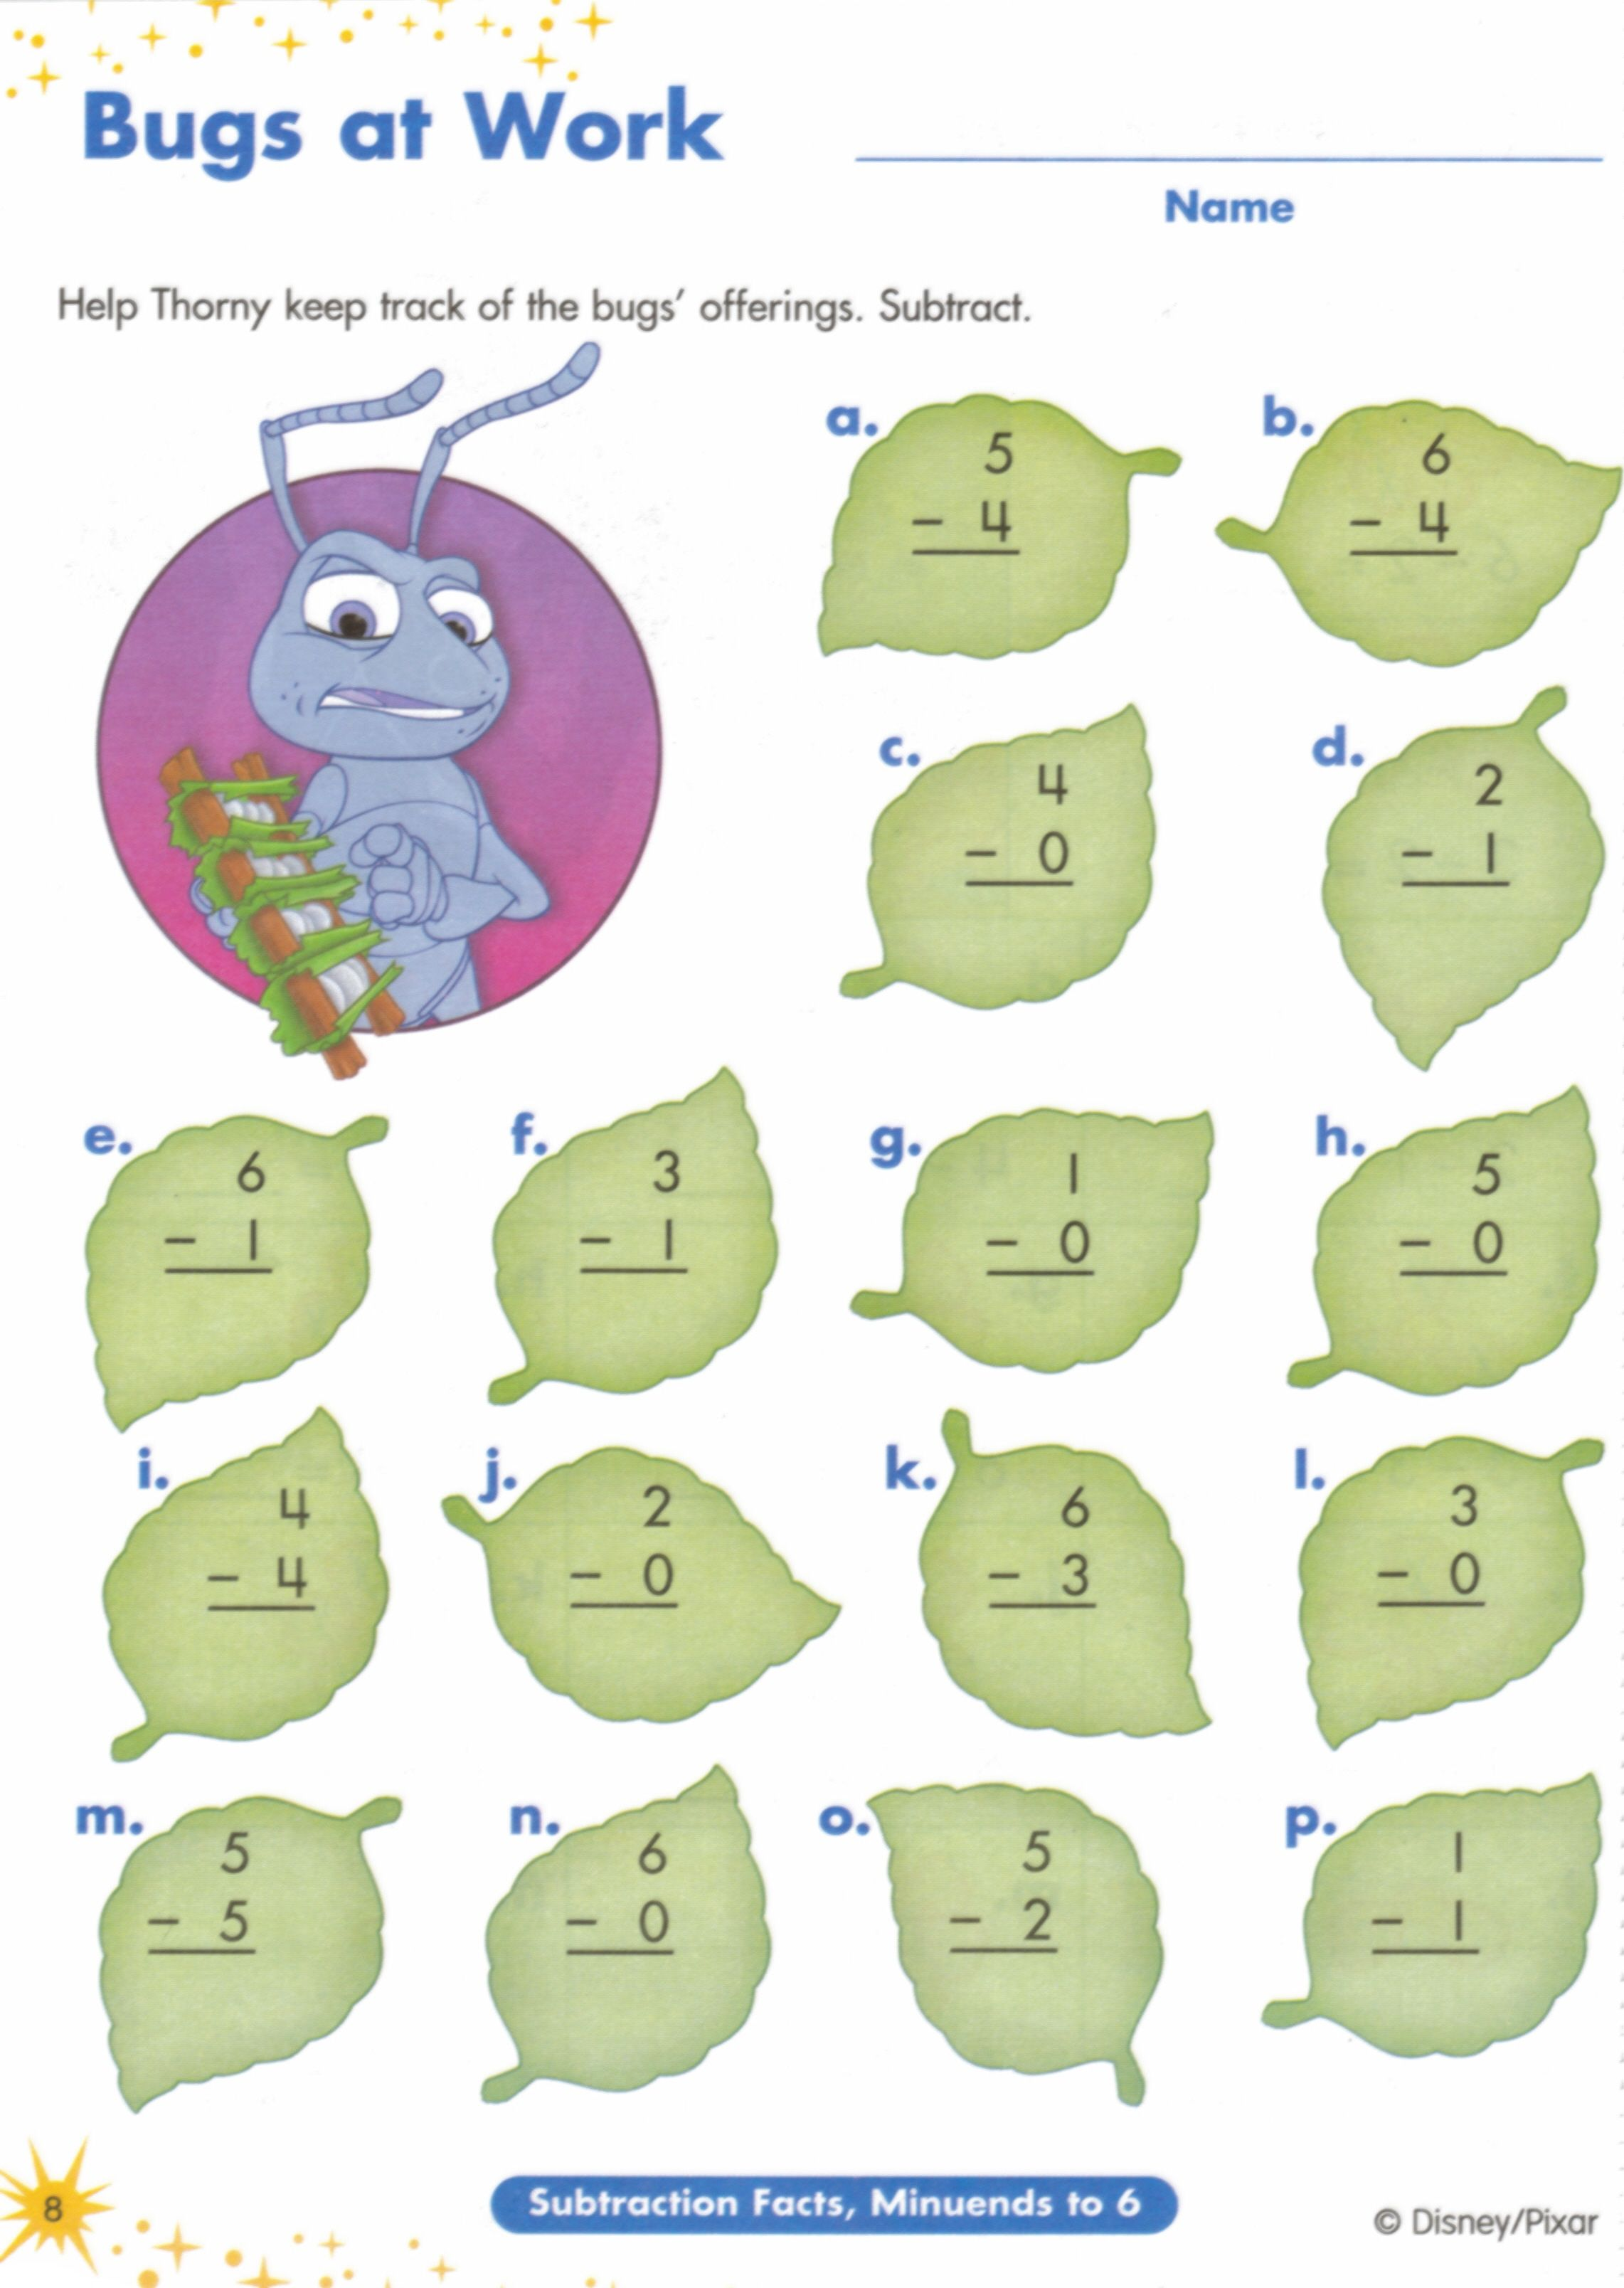 Proatmealus  Personable  Images About Worksheets On Pinterest  Fun Facts For Kids  With Exquisite  Images About Worksheets On Pinterest  Fun Facts For Kids Earth Day Worksheets And Jungles With Beautiful Ben Franklin Worksheets Also The Giver Vocabulary Worksheets In Addition Rational Expressions Worksheets And Parallel Circuit Problems Worksheet As Well As Worksheets For Third Graders Additionally Trivia Worksheets From Pinterestcom With Proatmealus  Exquisite  Images About Worksheets On Pinterest  Fun Facts For Kids  With Beautiful  Images About Worksheets On Pinterest  Fun Facts For Kids Earth Day Worksheets And Jungles And Personable Ben Franklin Worksheets Also The Giver Vocabulary Worksheets In Addition Rational Expressions Worksheets From Pinterestcom